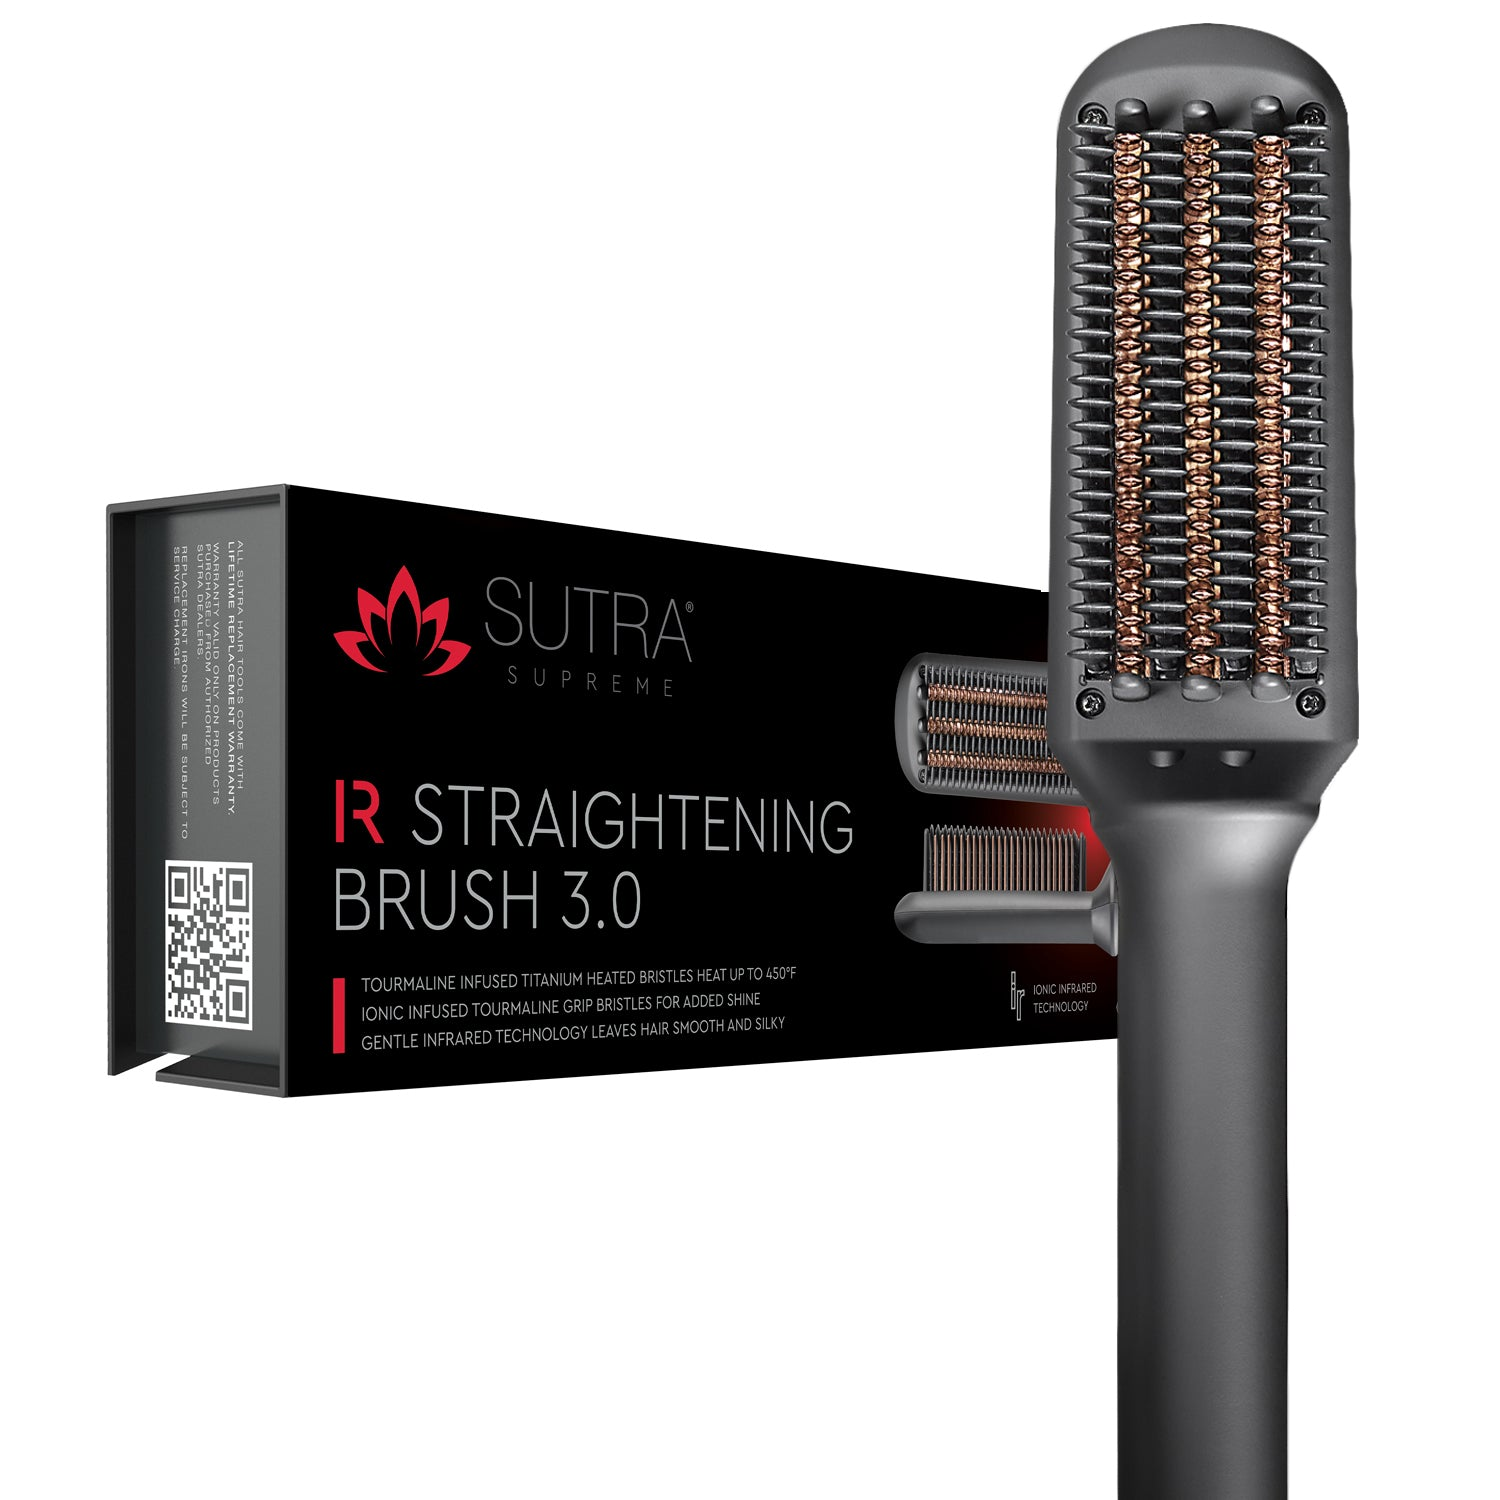 Infrared Straightening Brush 3.0